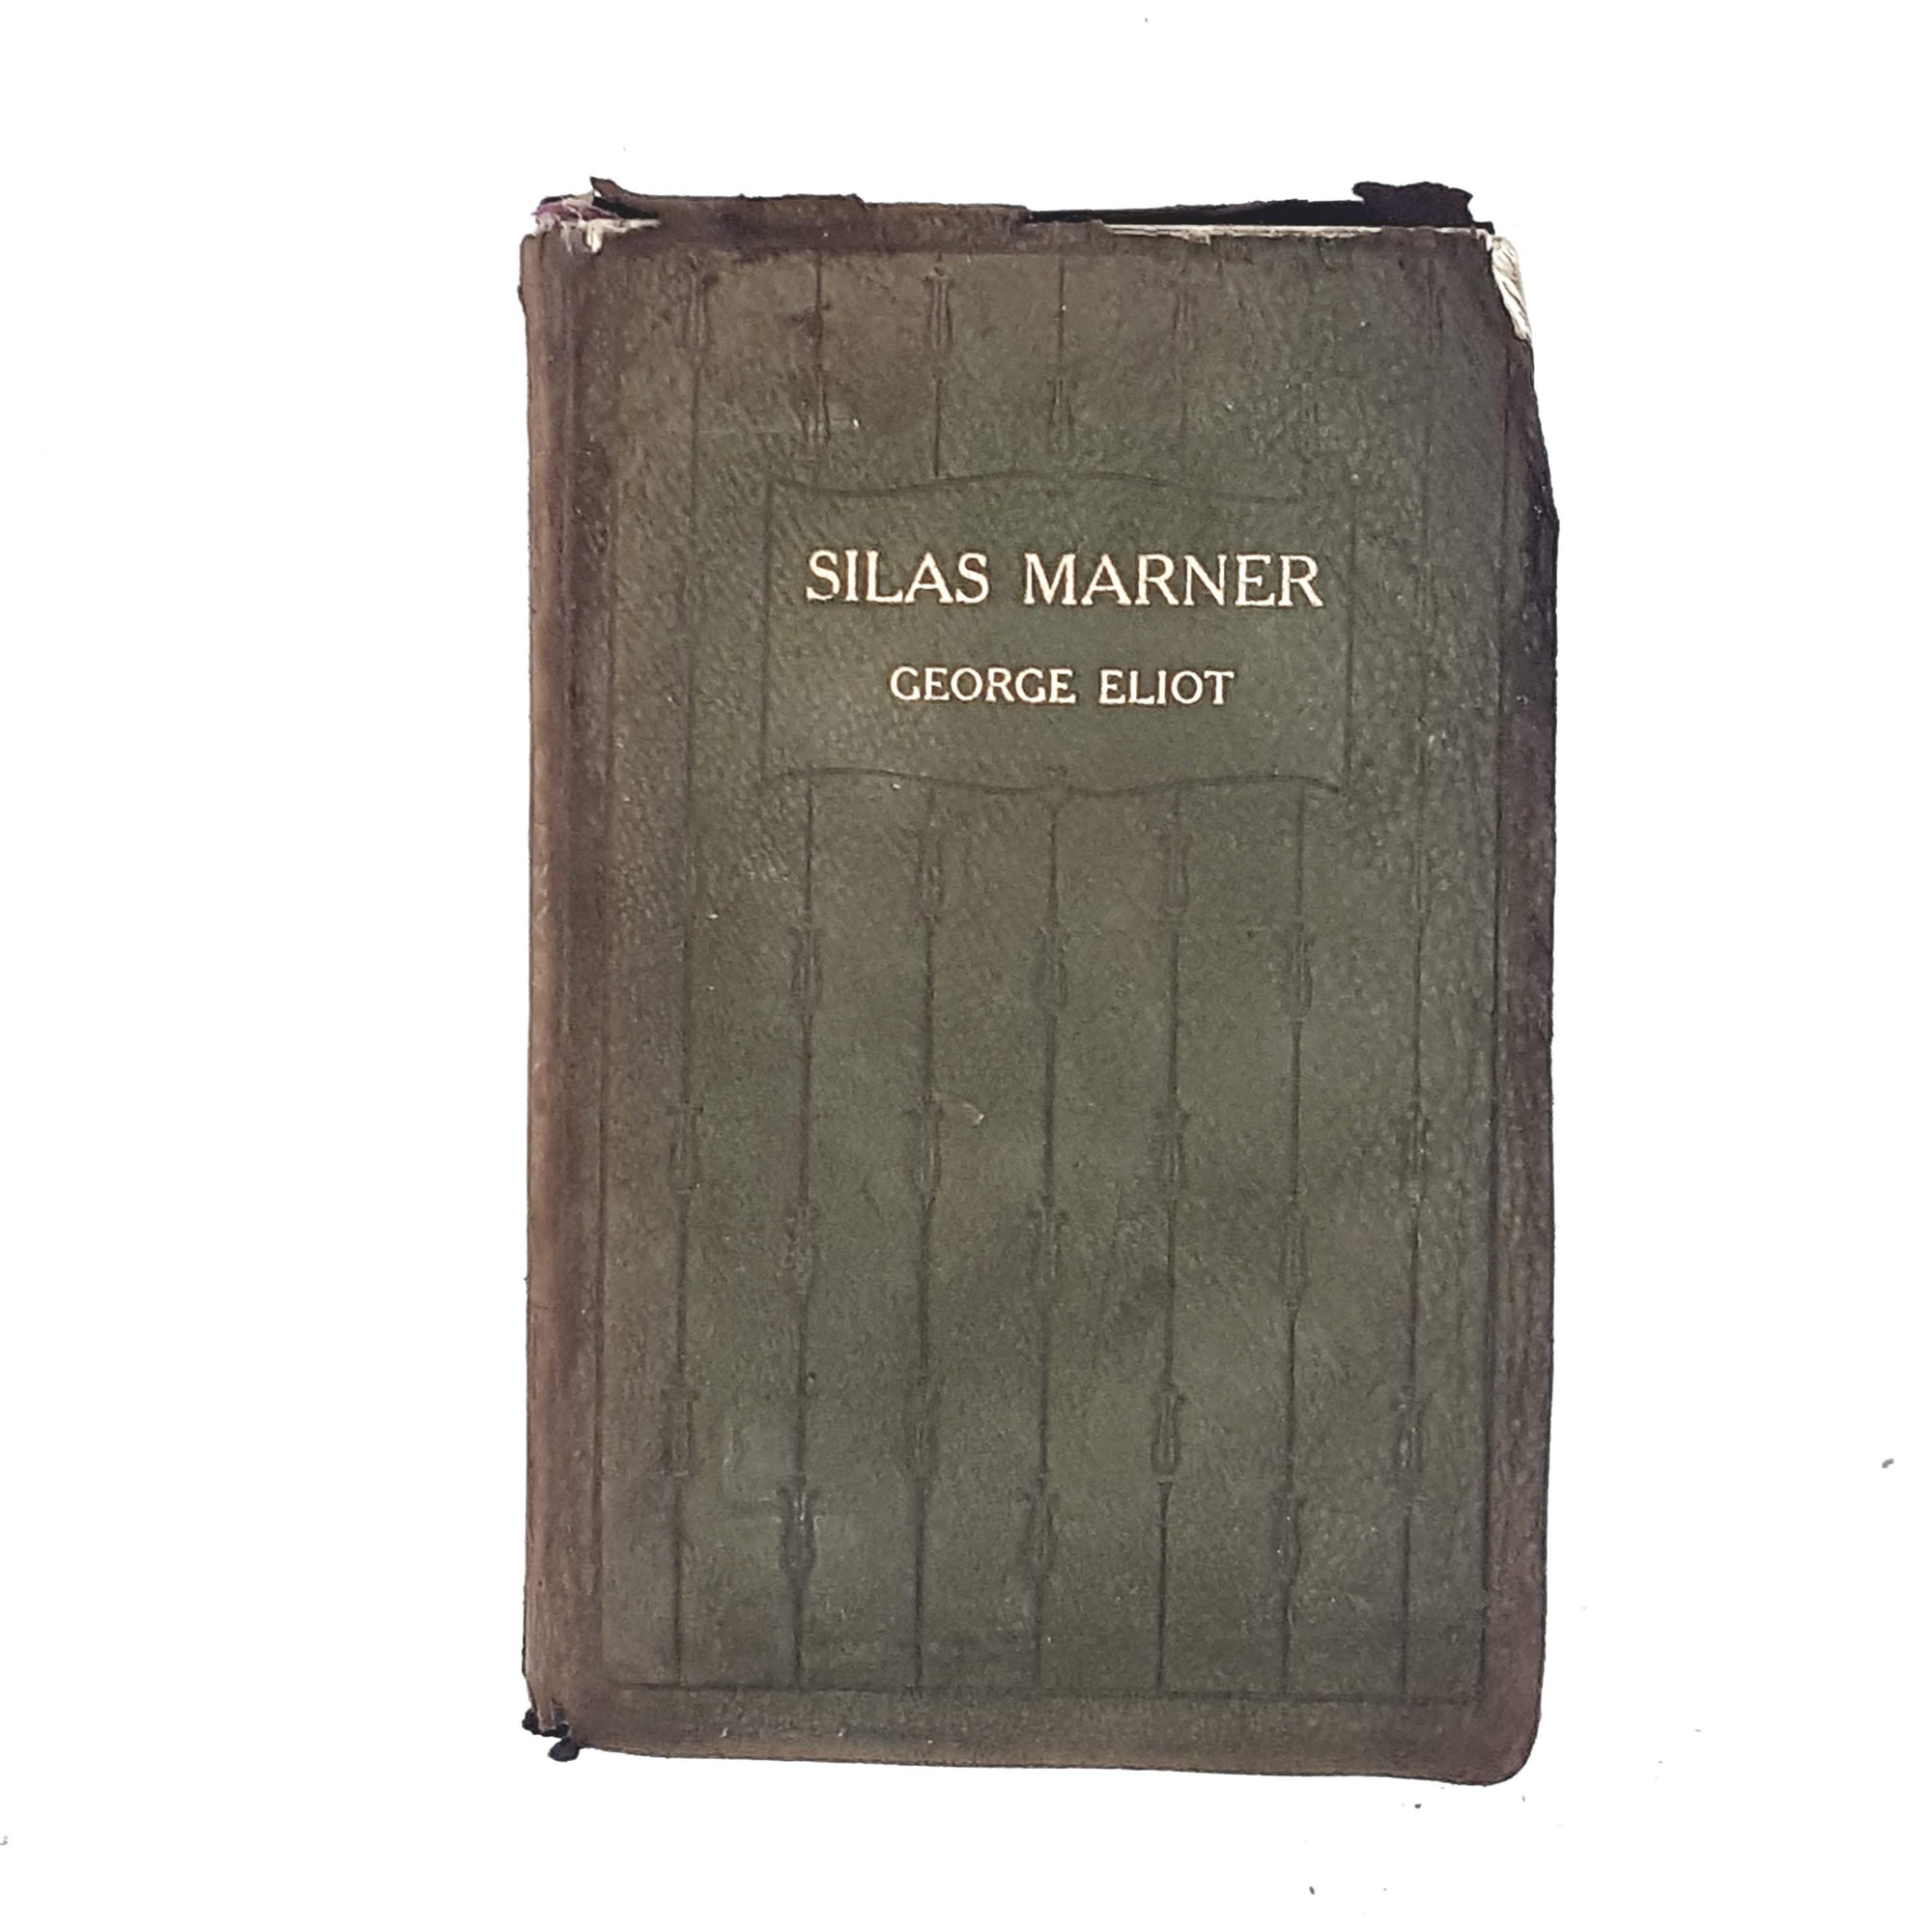 George Eliot's Silas Marner 1906